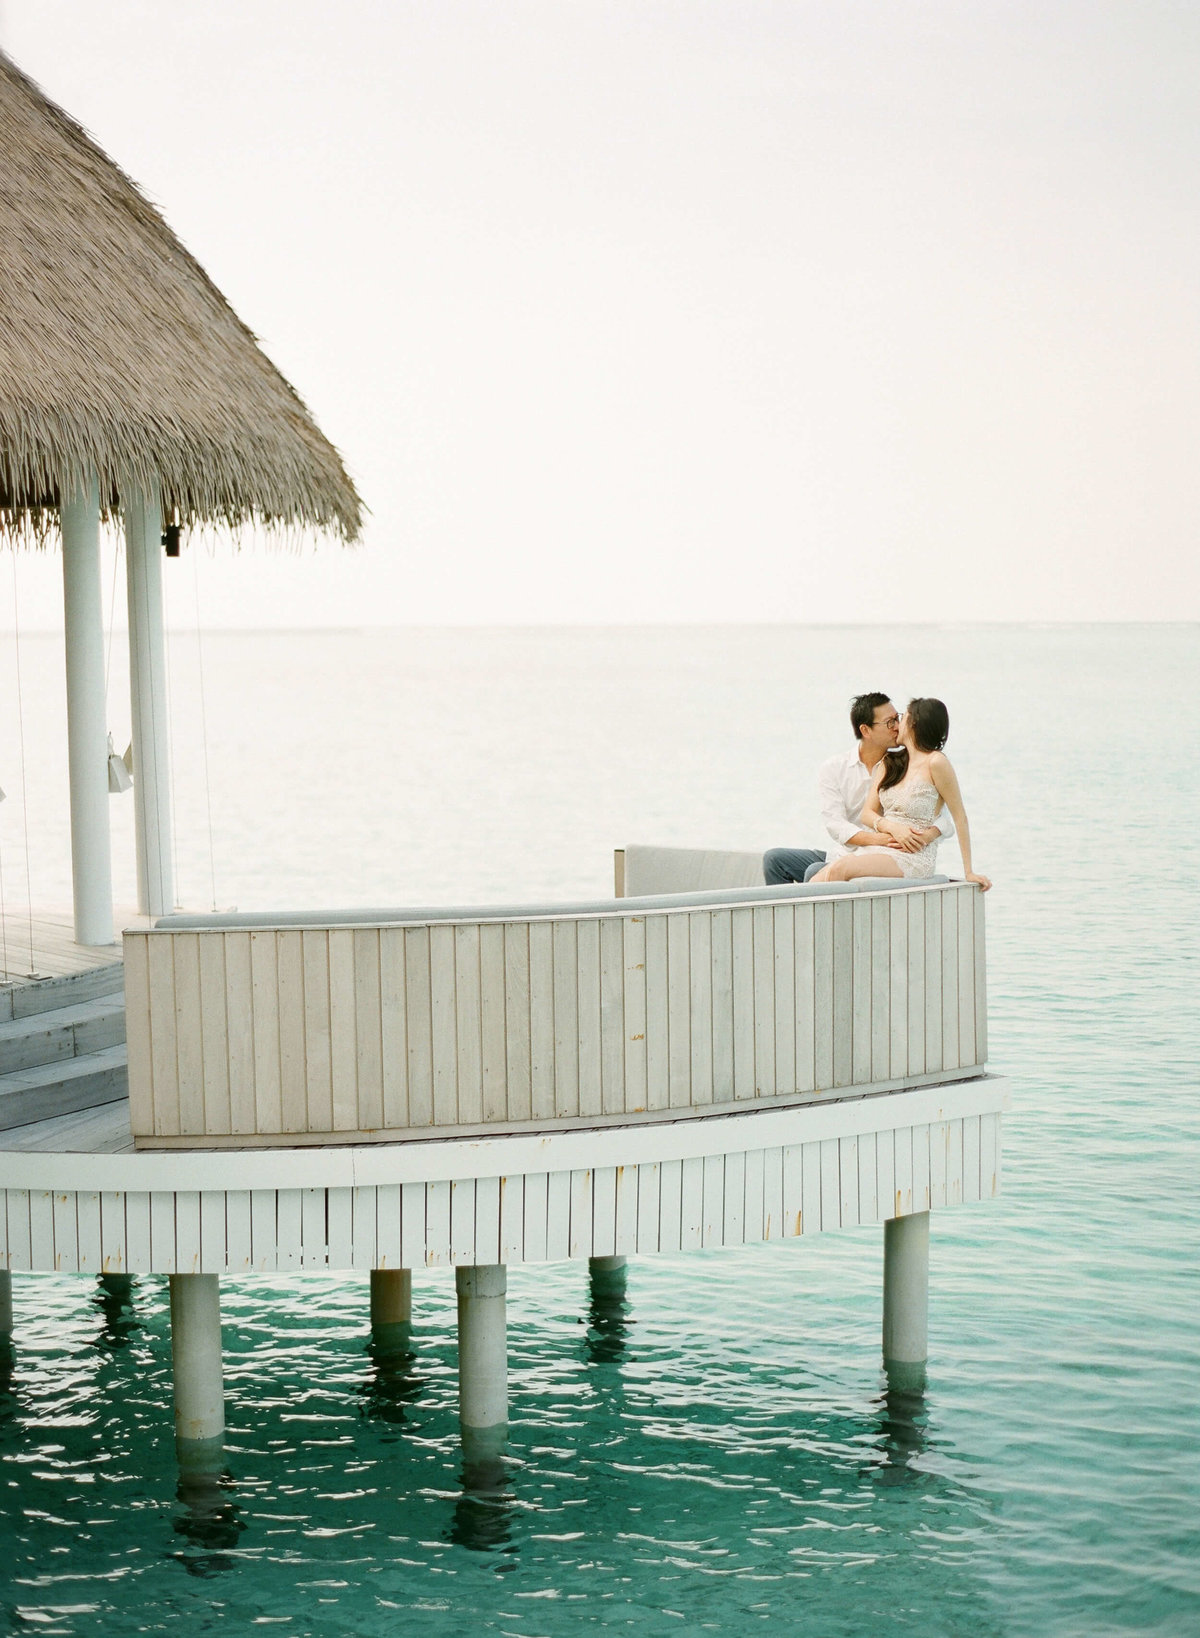 18-KTMerry-destinationwedding-Maldives-bungalow